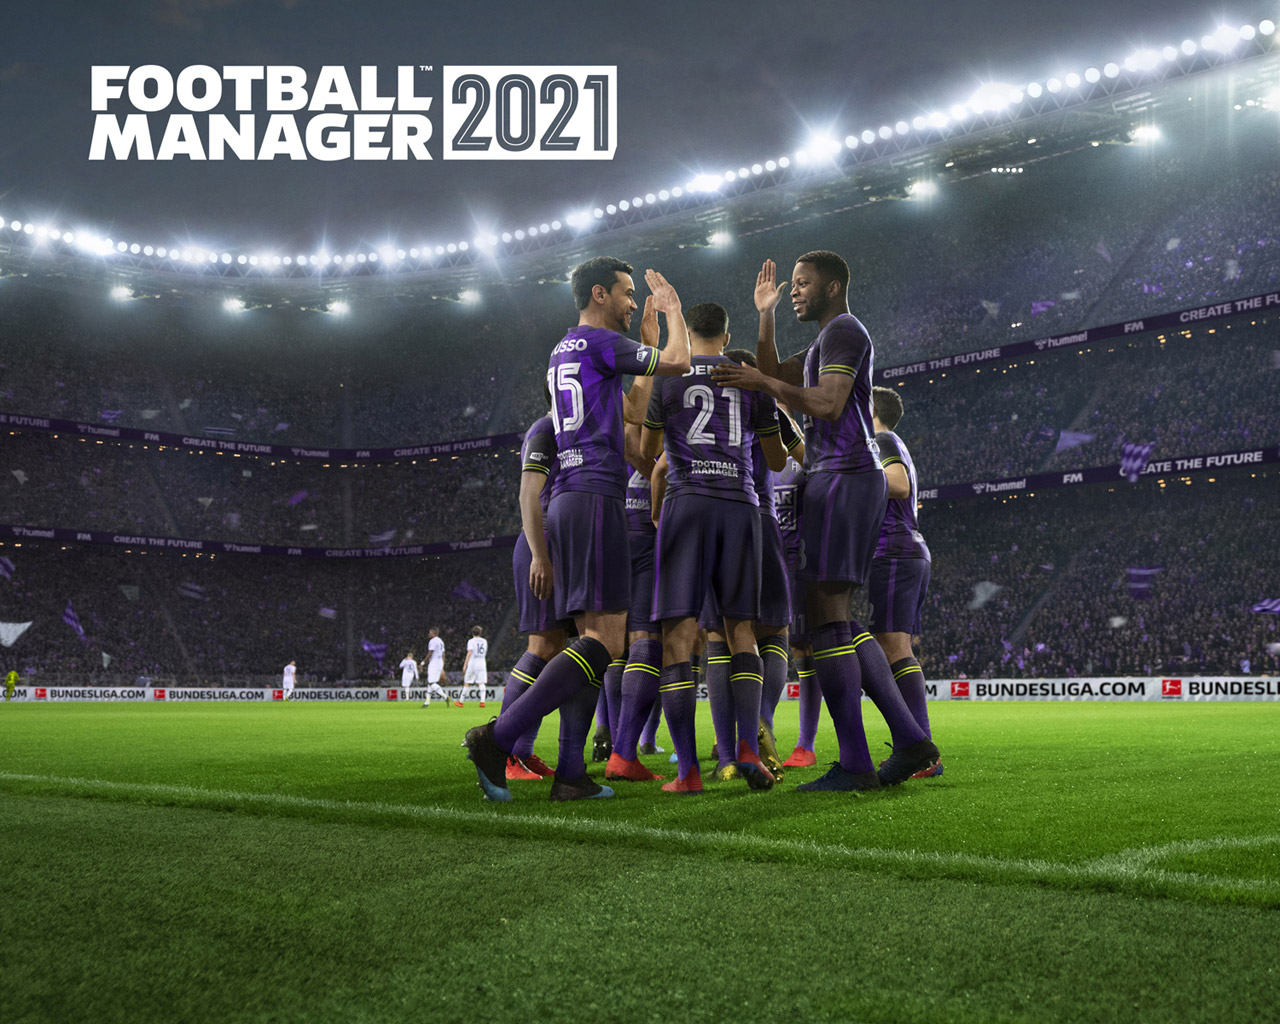 Free Football Manager 2021 Wallpaper in 1280x1024